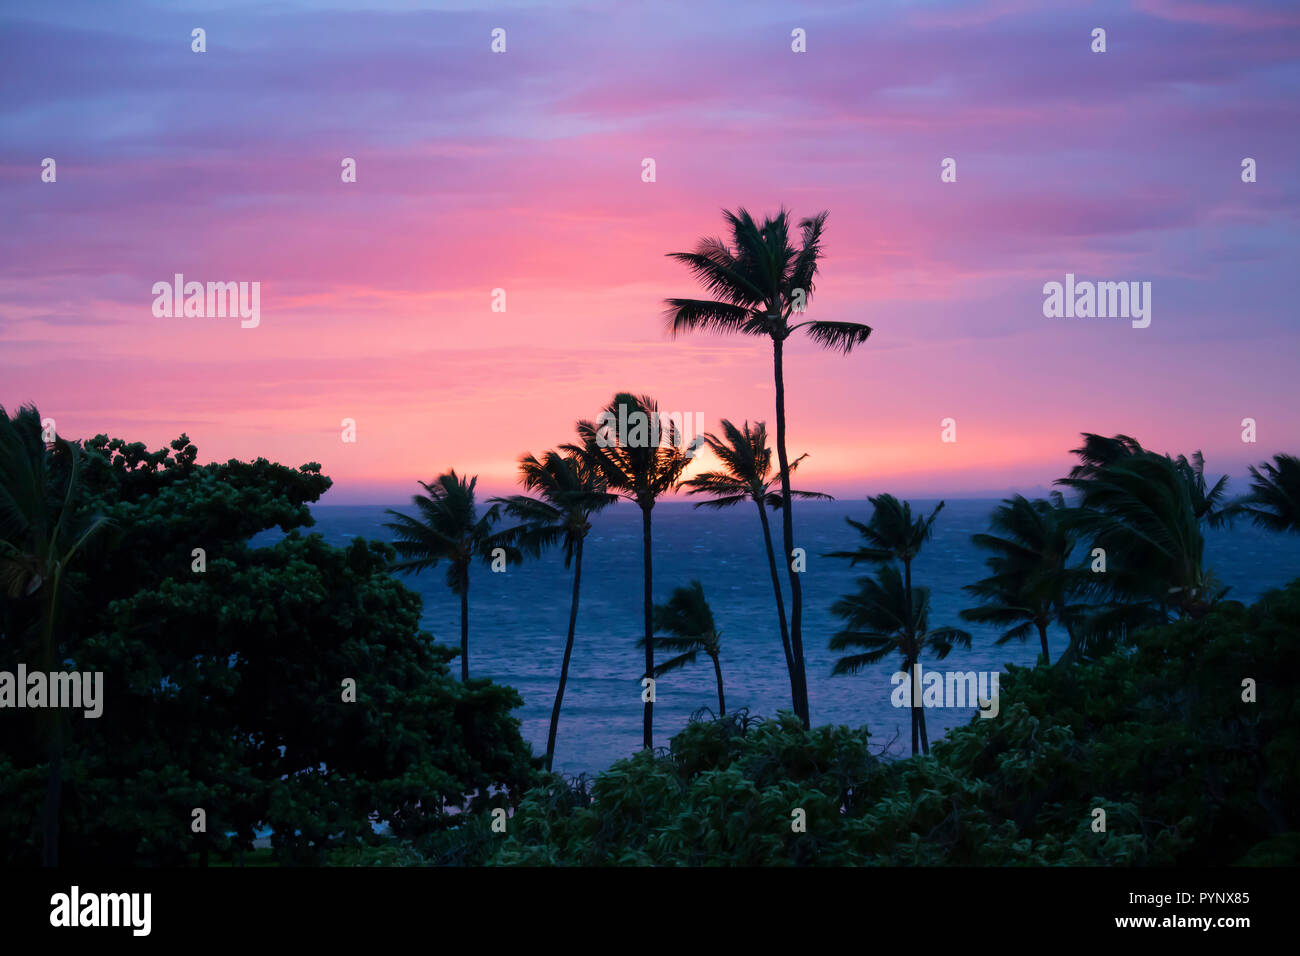 Palm Trees In Silhouette Before Pink And Purple Sunset Sky With Sun Sinking On Horizon Of Ocean Stock Photo Alamy